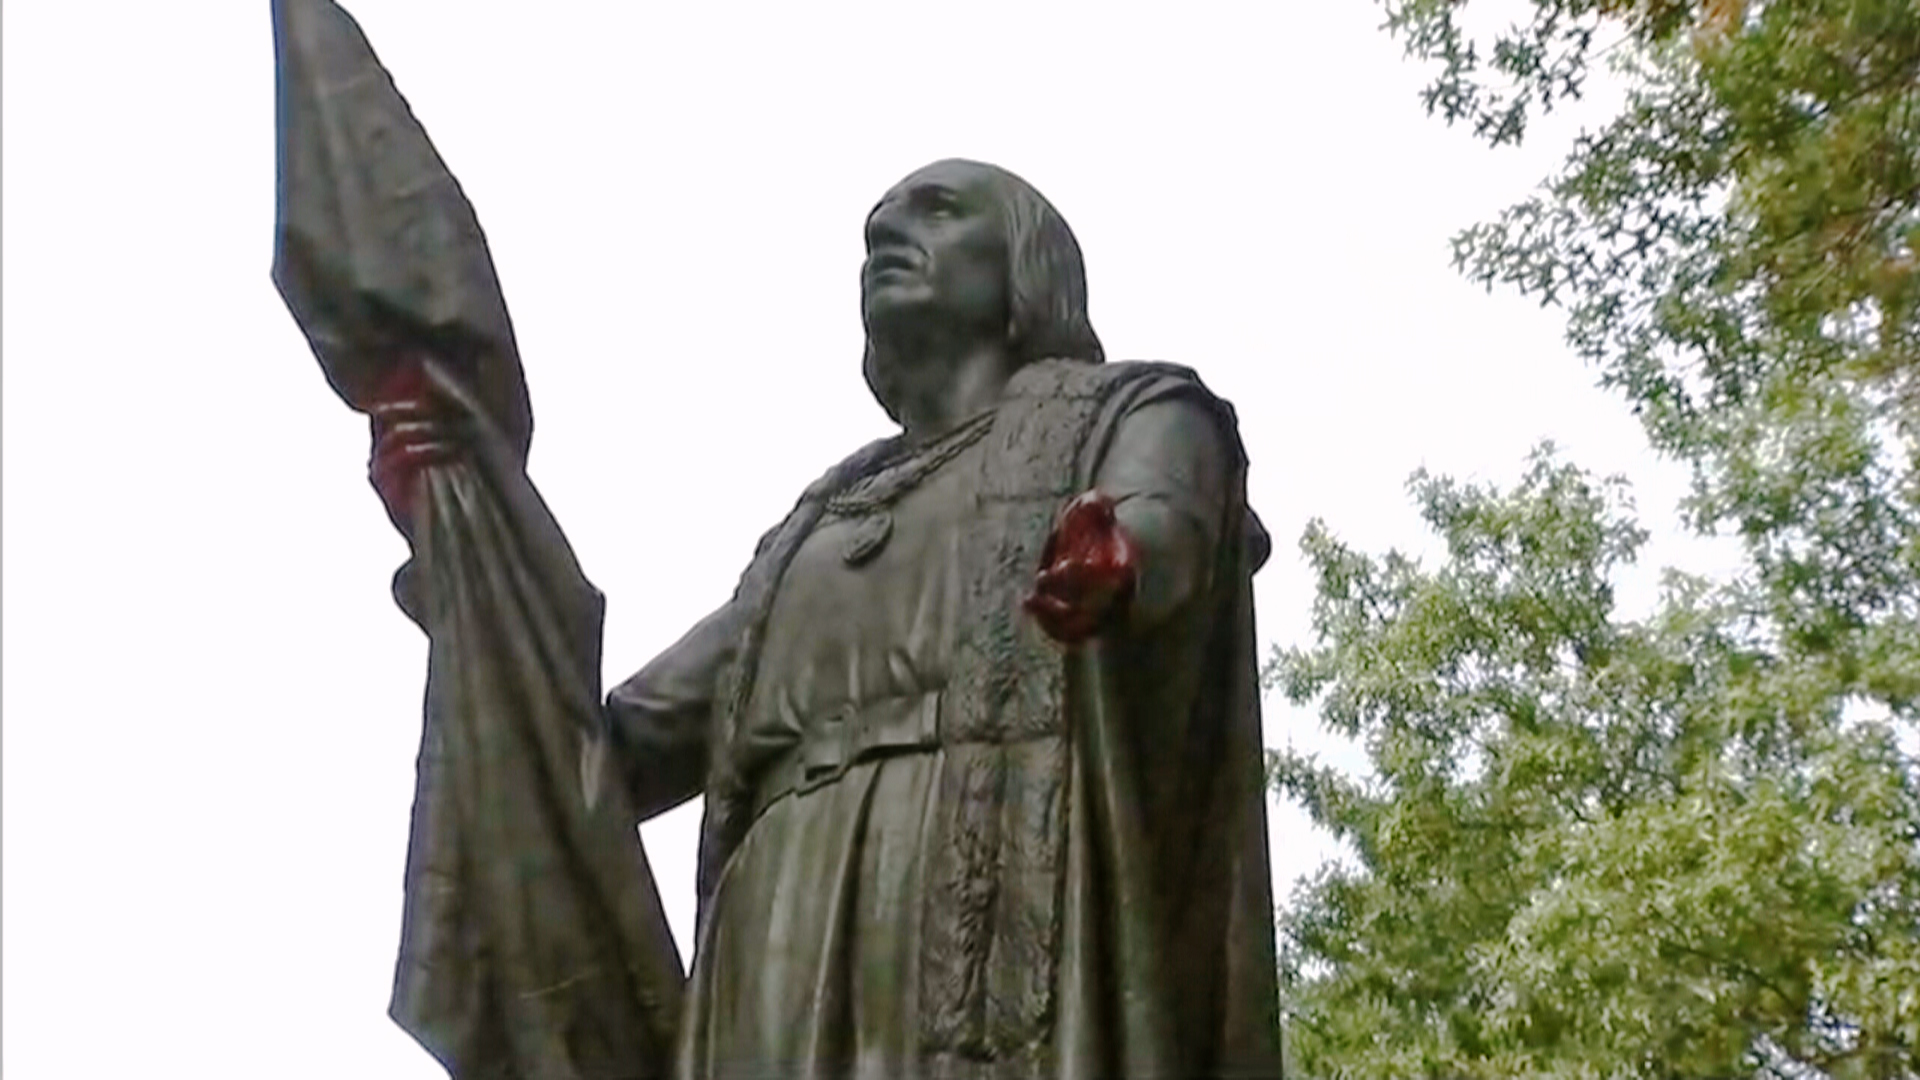 Image: A statue of Christopher Columbus was vandalized in Central Park in New York